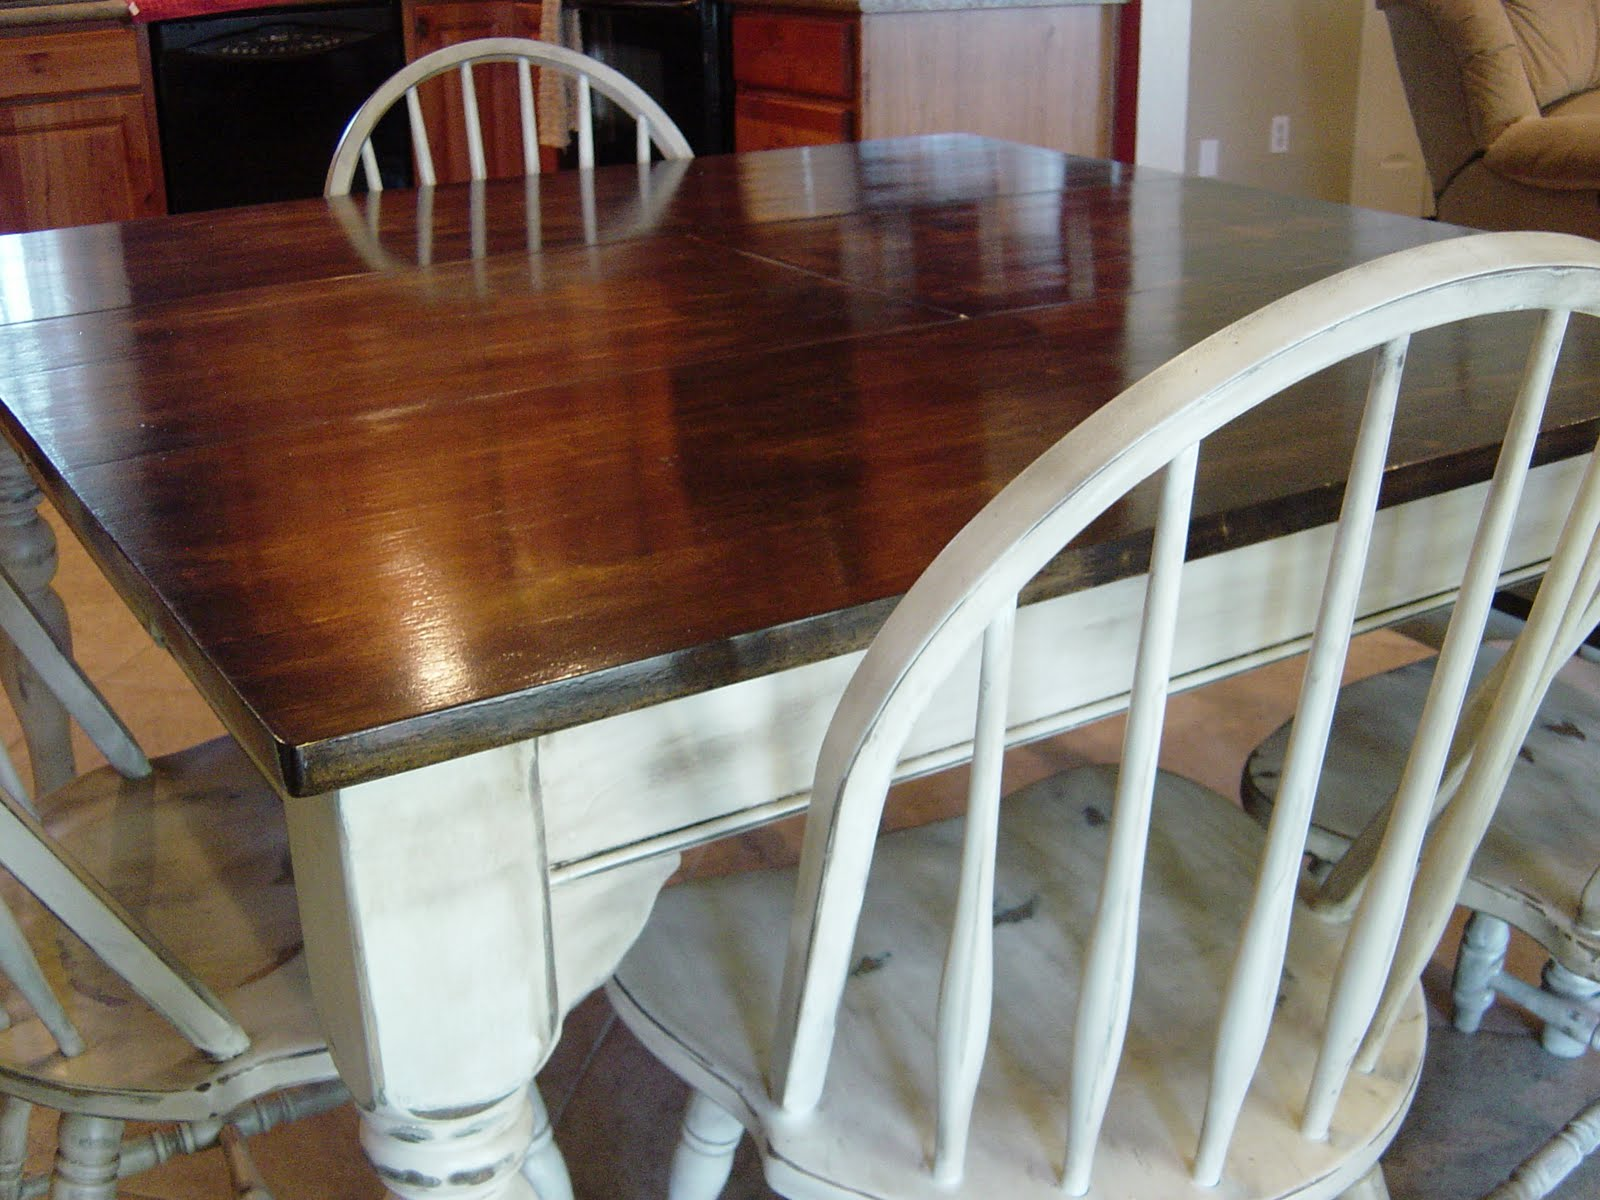 Remodelaholic Kitchen Table Refinished With Distressed Look. Full resolution‎  portraiture, nominally Width 1600 Height 1200 pixels, portraiture with #673A24.